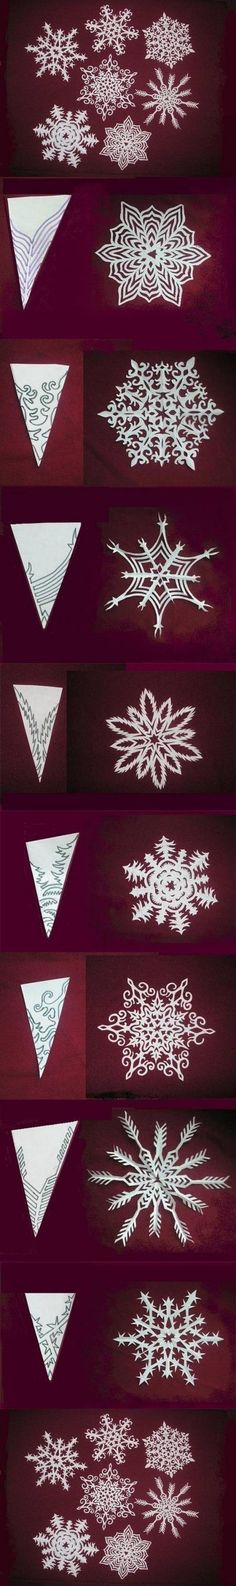 How to make beautiful Snowflakes Paper craft DIY tutorial instructions / How To Instructions